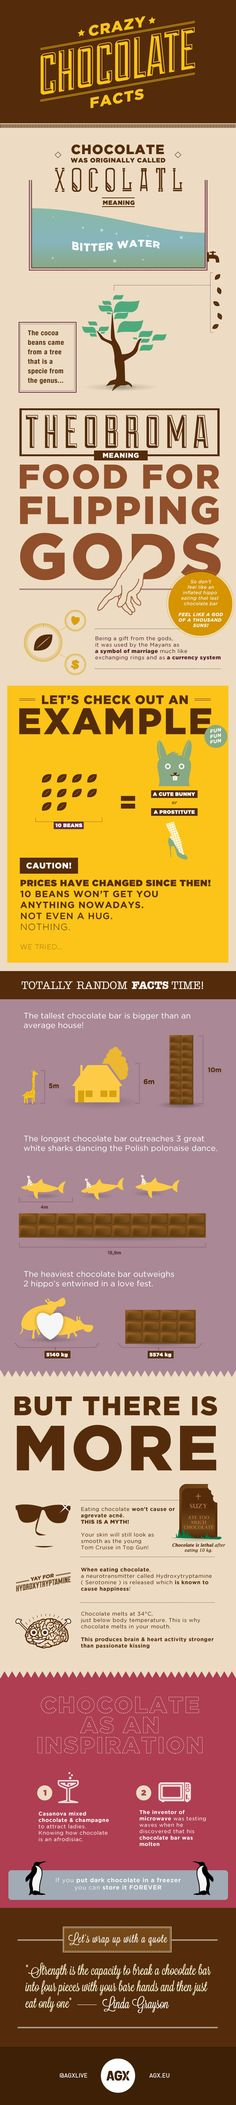 Crazy Chocolate Facts -  A little bit tongue in cheek, but I didn't find any that were actually incorrect. :-)